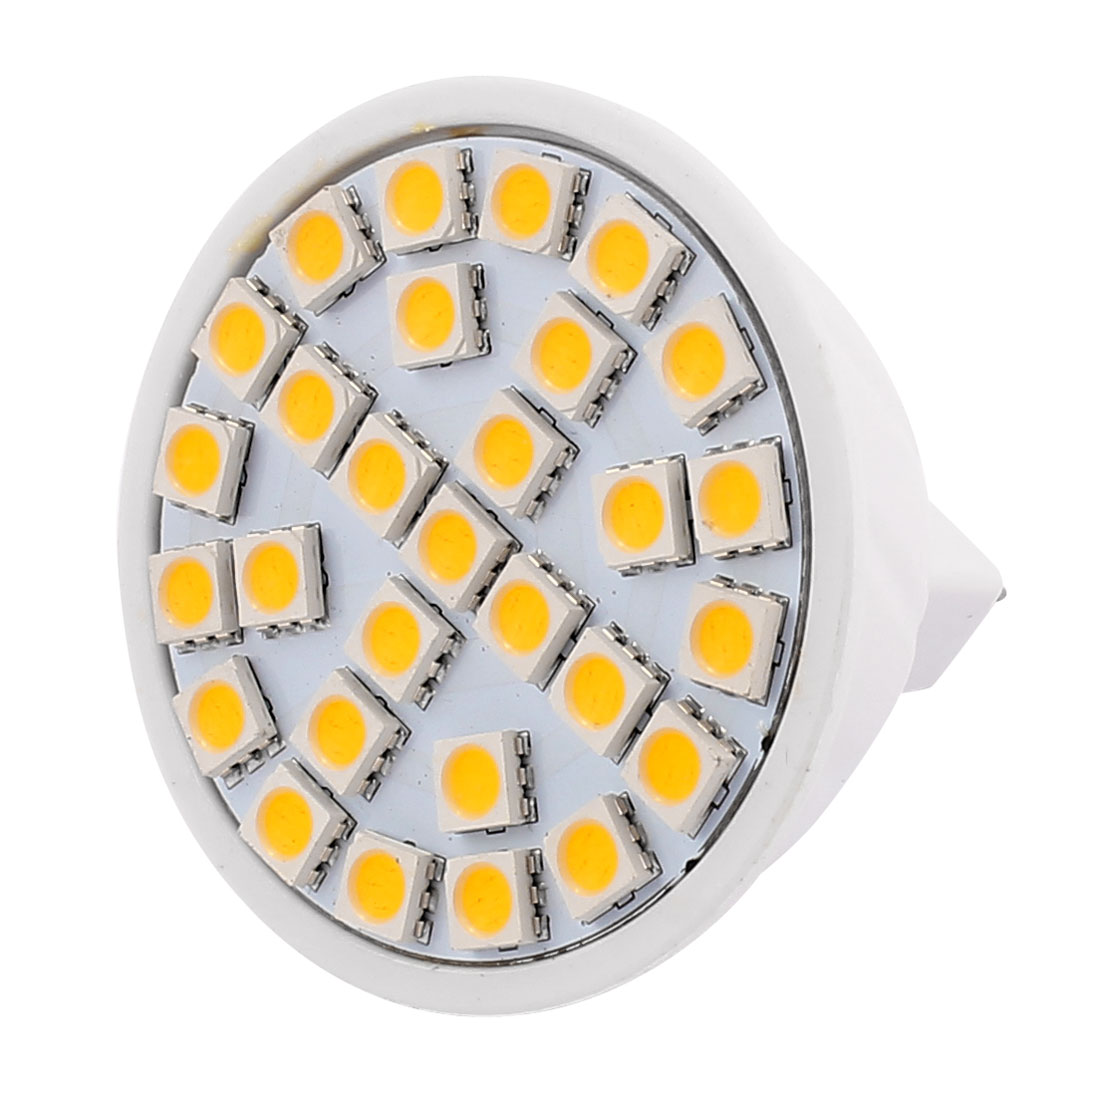 MR16 SMD5050 29 LEDs 5W Energy Saving LED Spotlight Lamp Bulb Warm White AC 220V